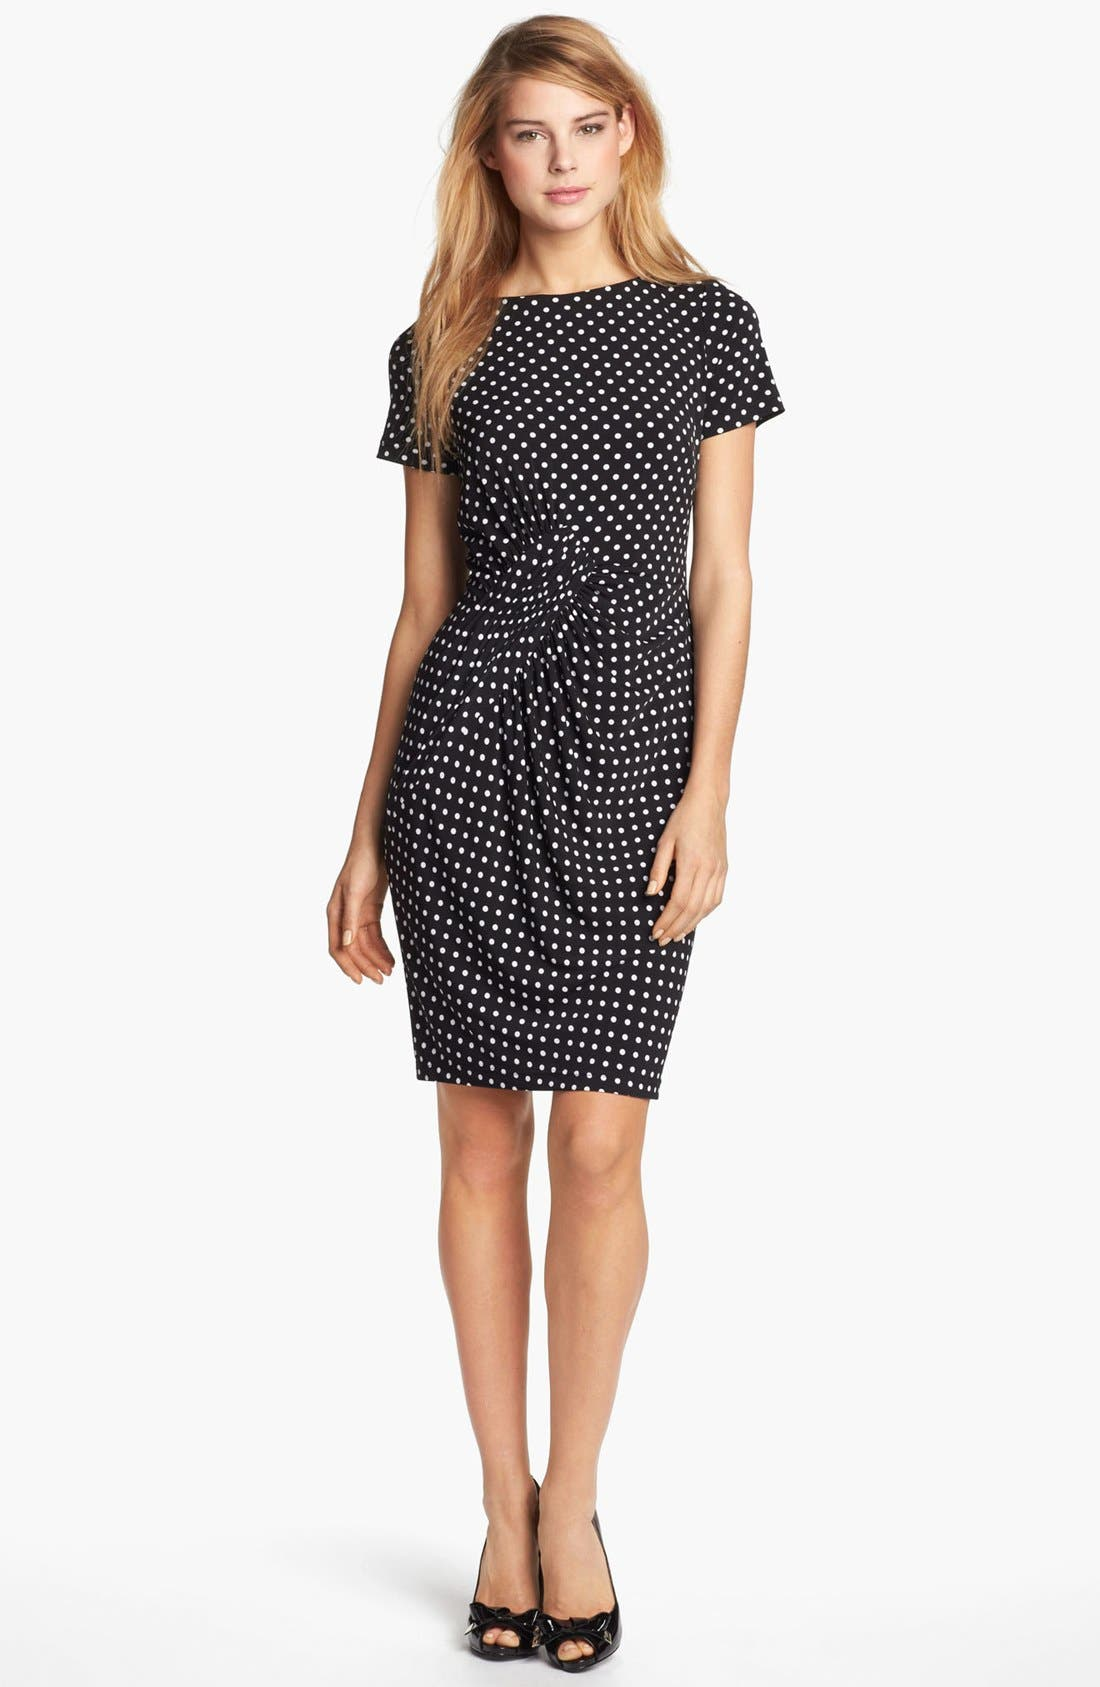 Alternate Image 1 Selected - Adrianna Papell Polka Dot Ruched Jersey Dress